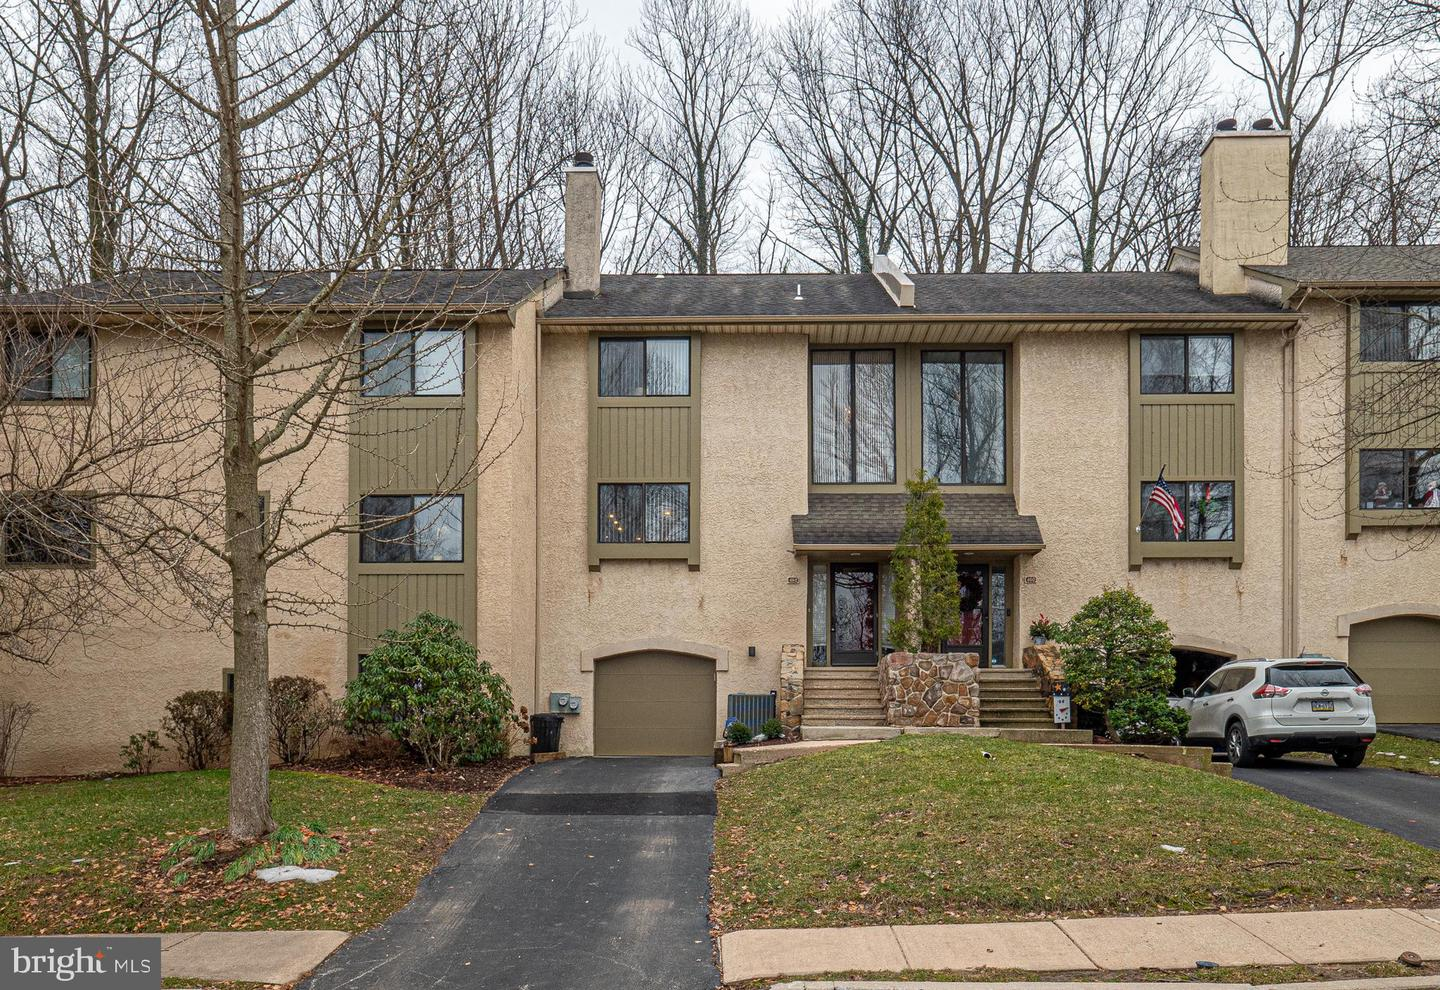 462 Lynetree Drive West Chester , PA 19380